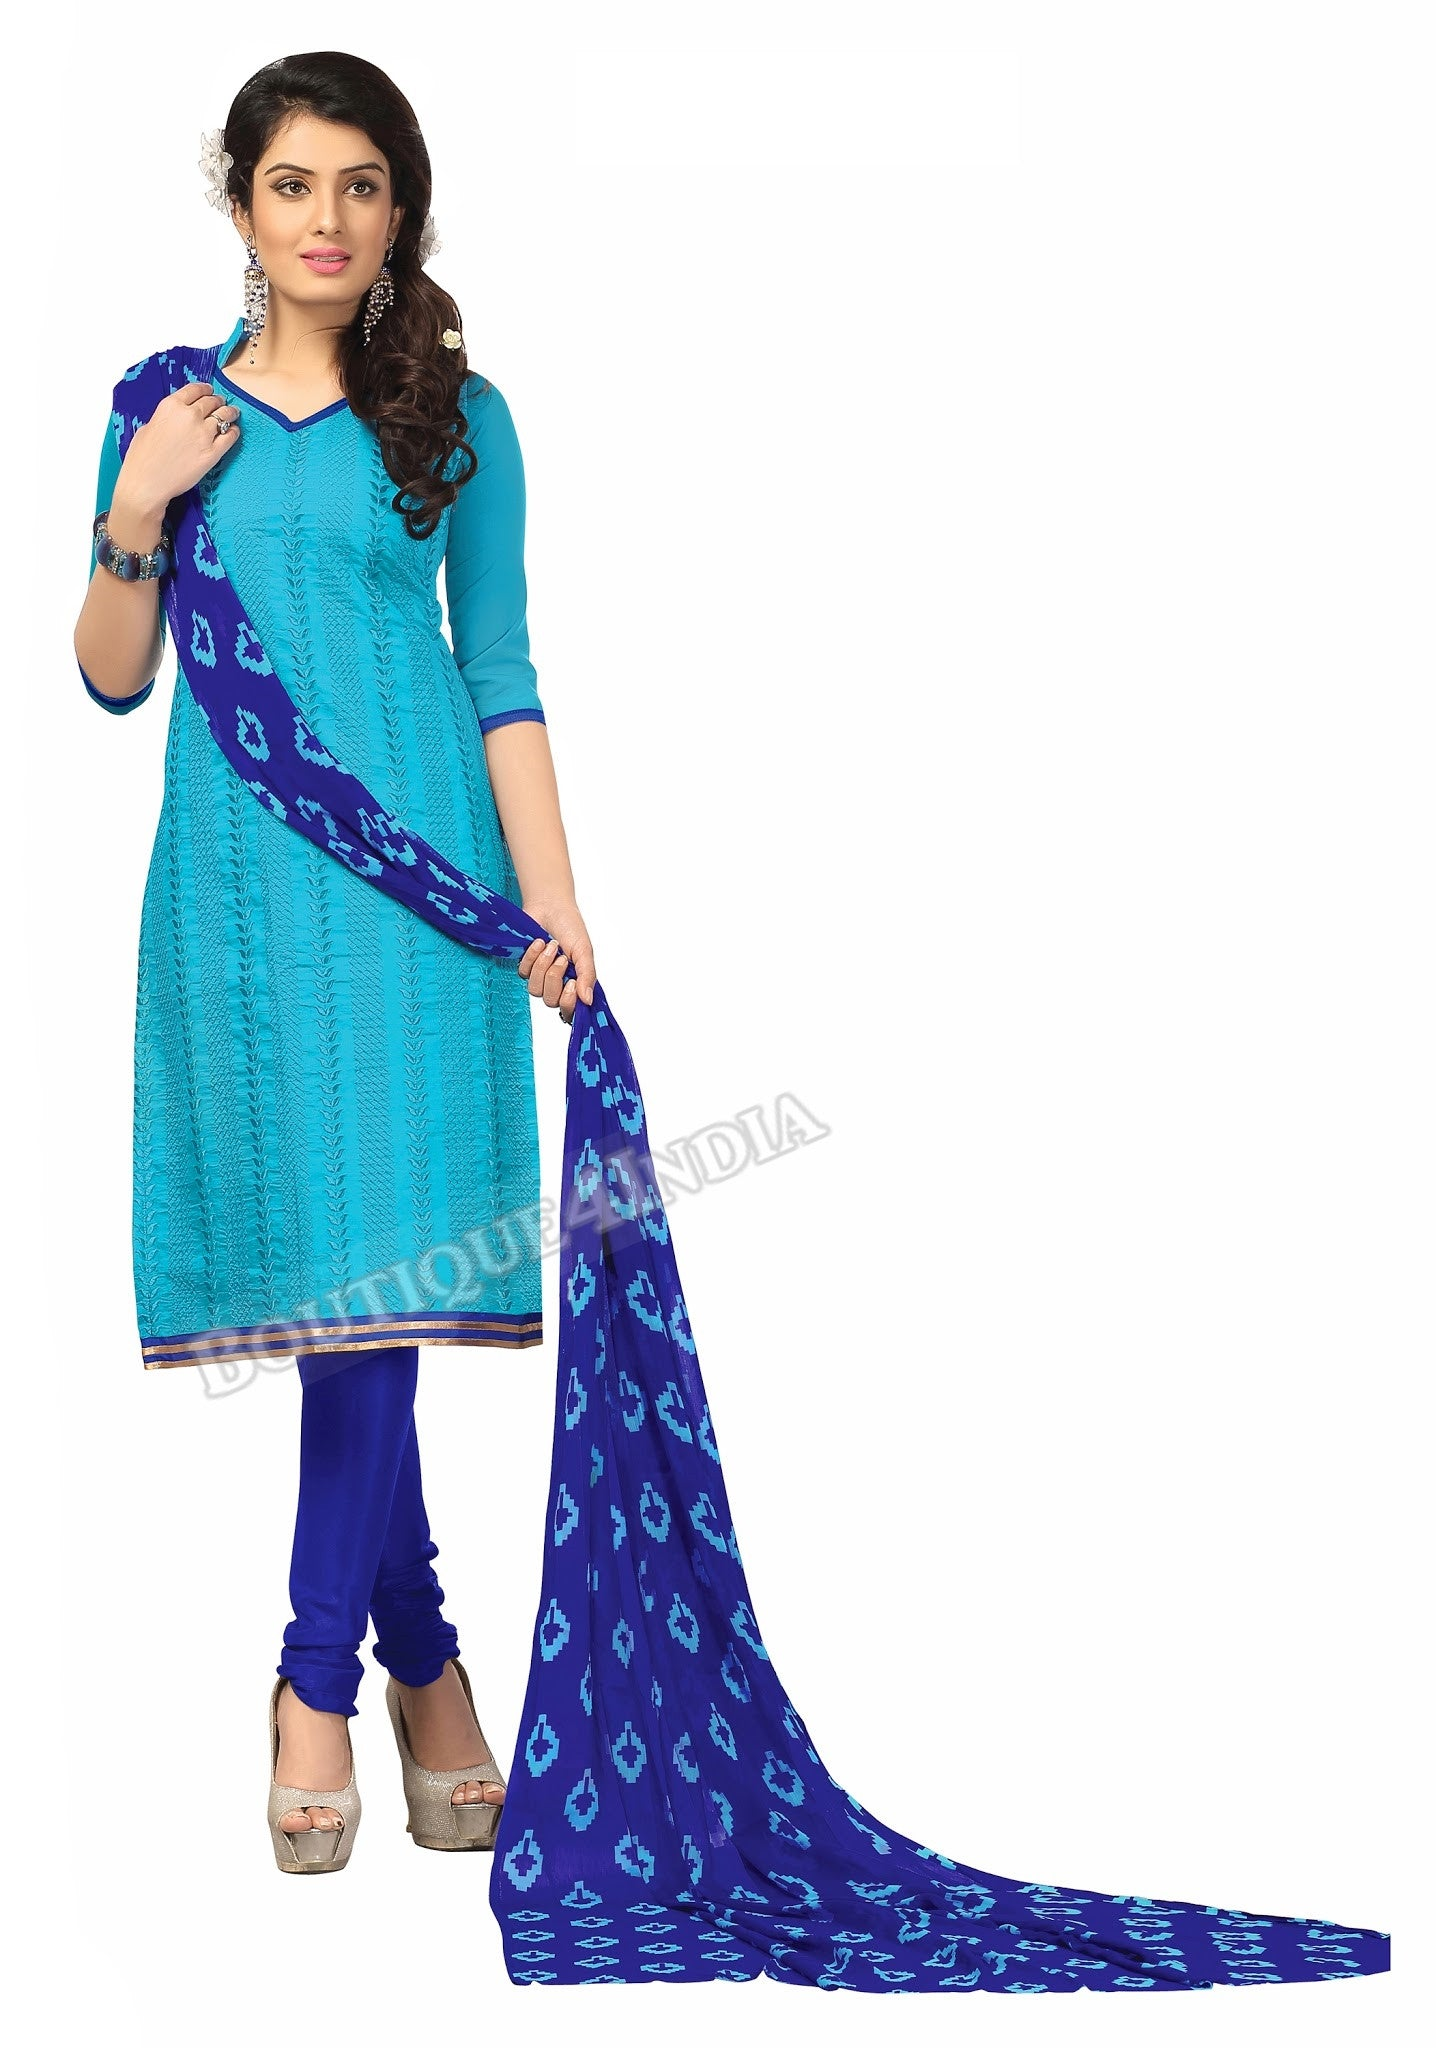 Blue Shades printed Chanderi Embroidered Straight Cut Salwar Suit